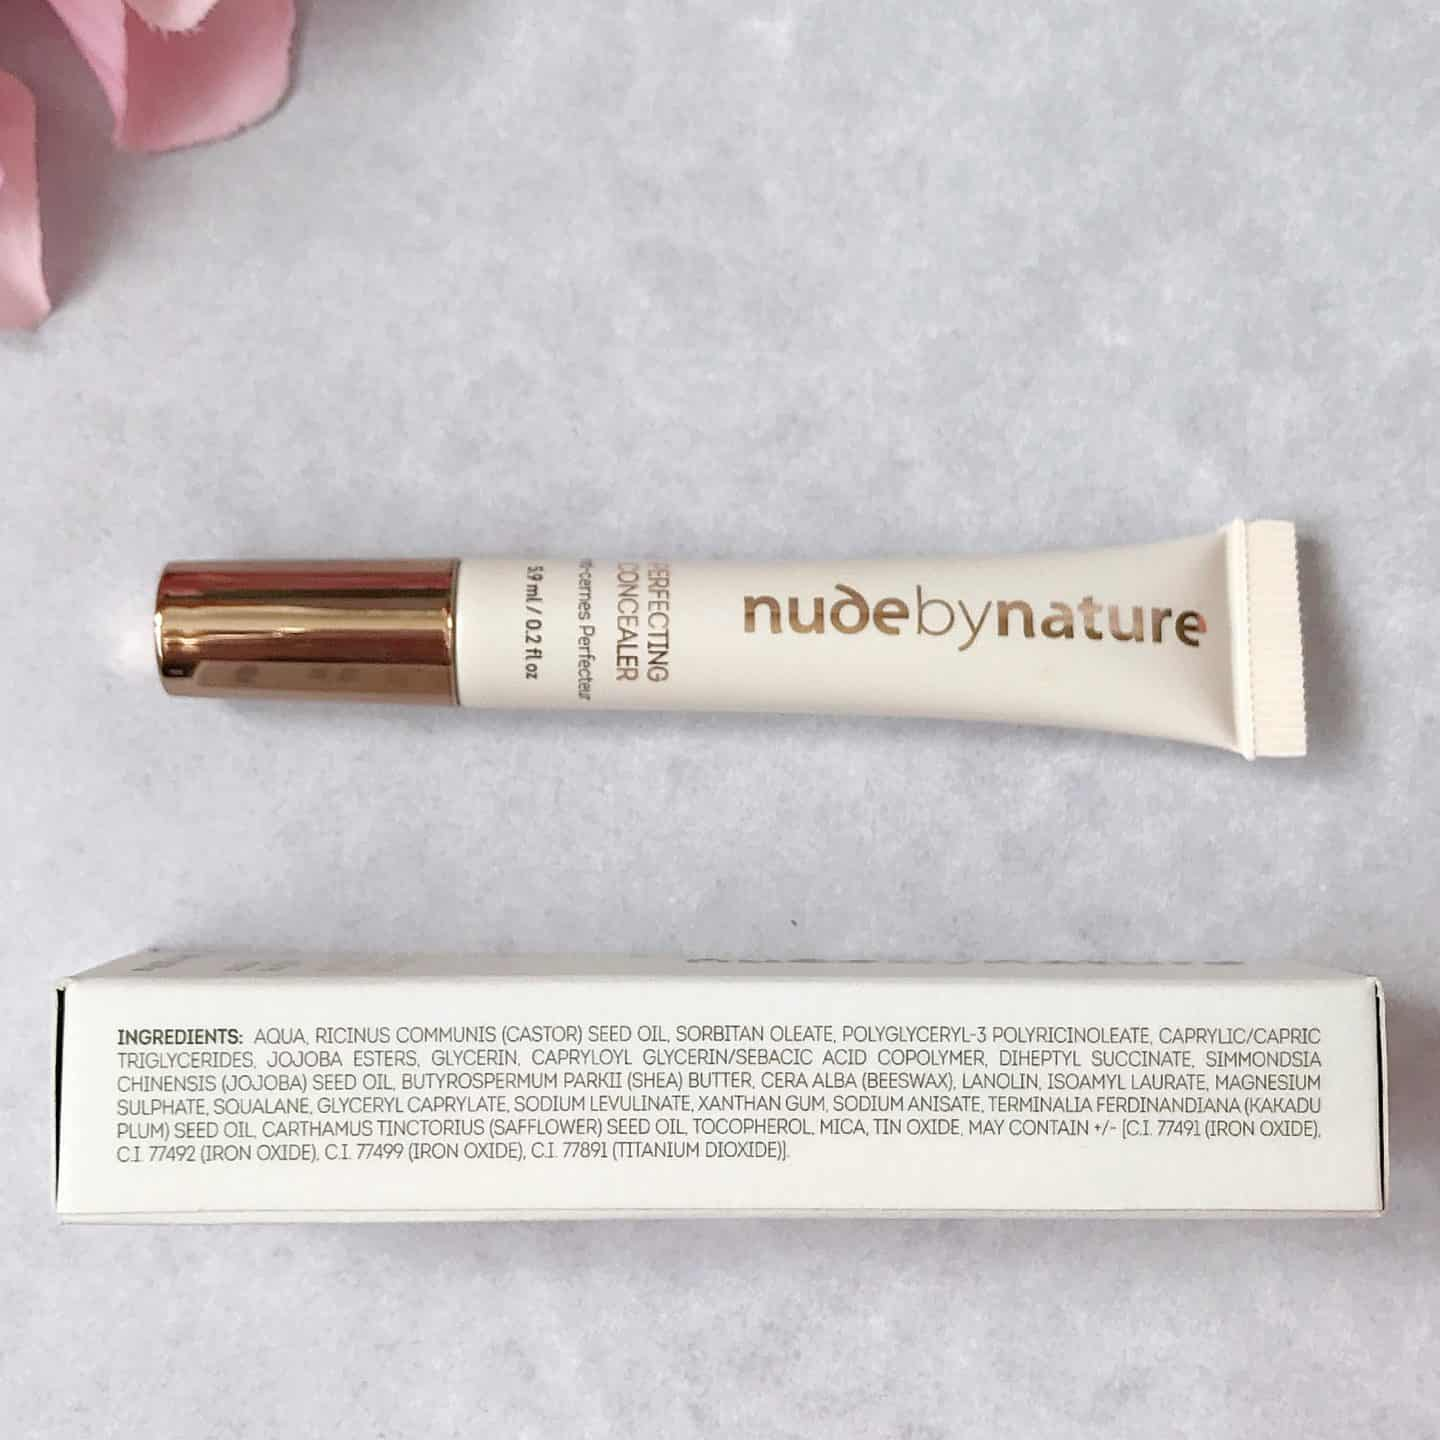 Nude by Nature Perfecting Concealer ingredients